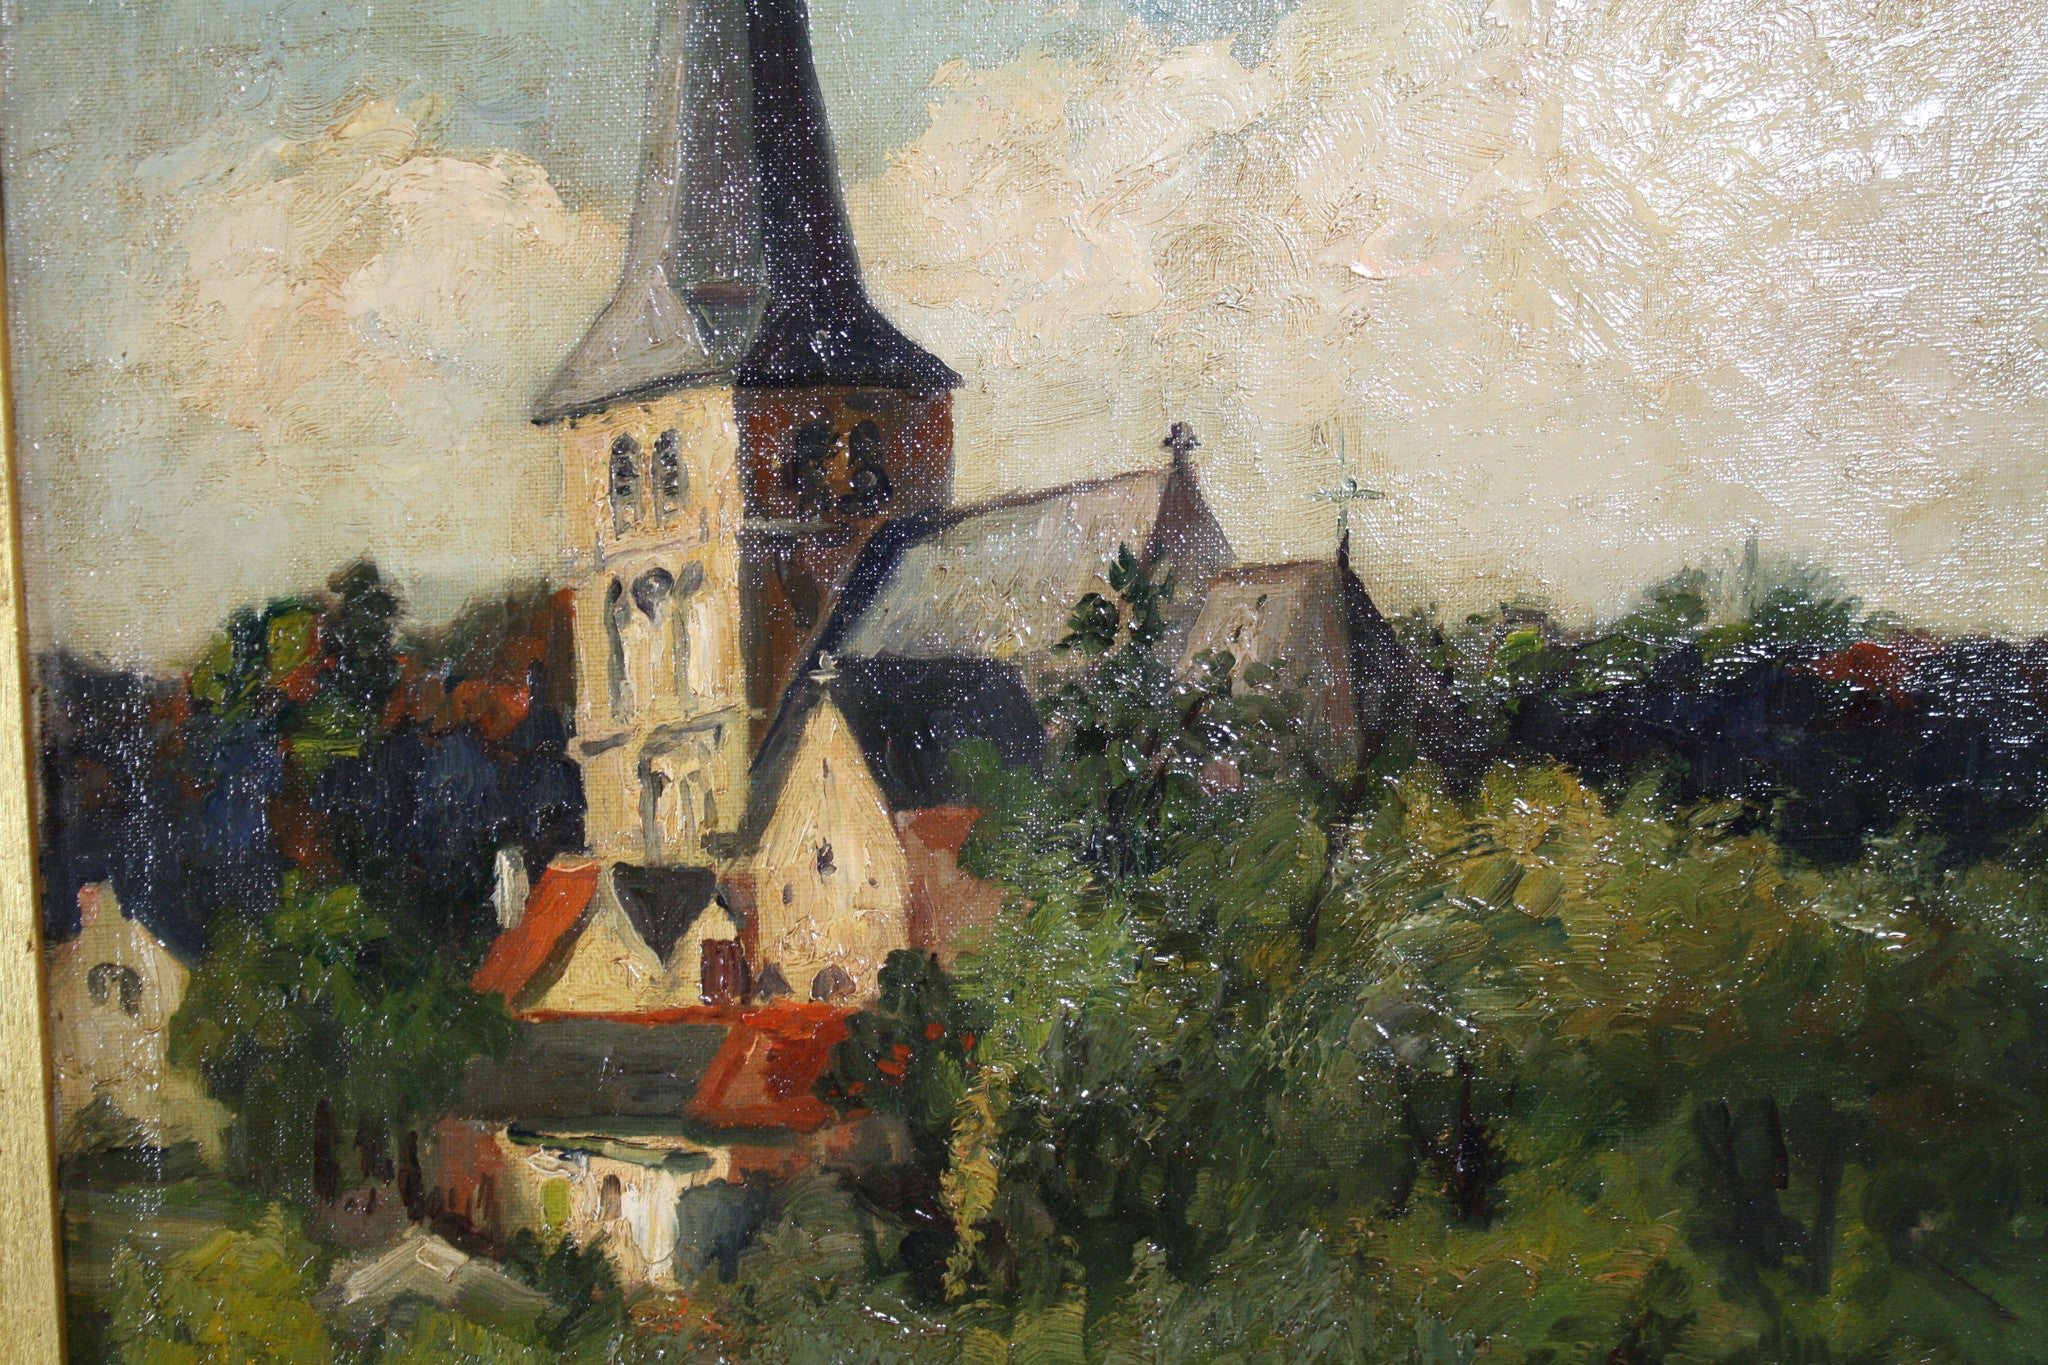 Church Painting by Raymond Charlot